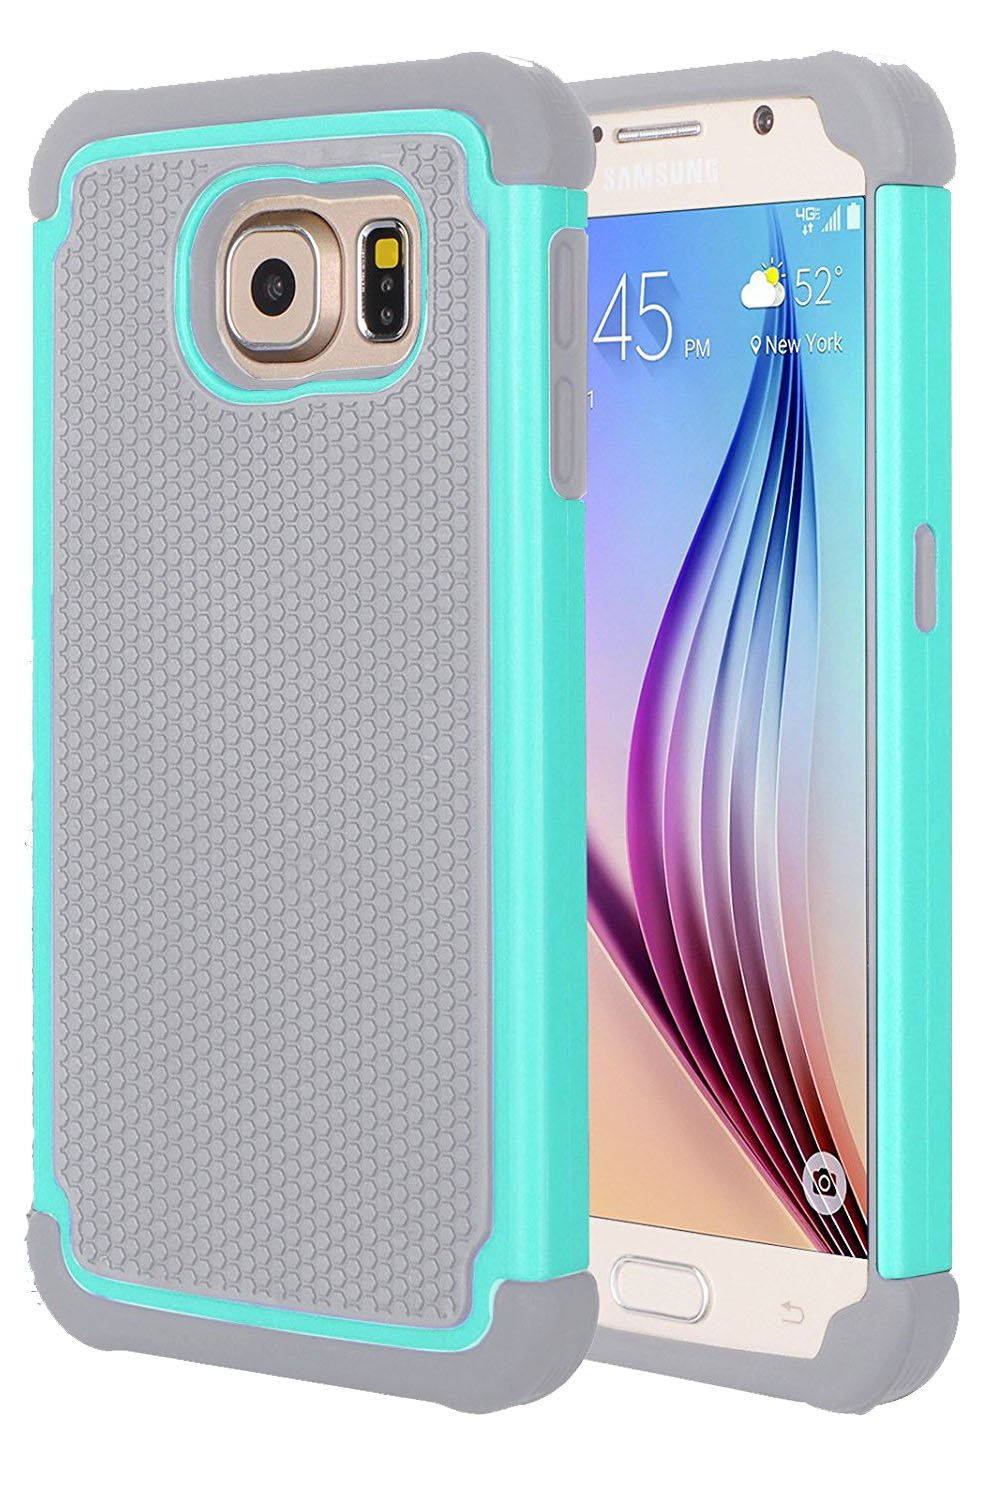 best service 60c31 f813c FDTCYDS Galaxy s6 Plus Edge case,s6 Edge + case Shockproof Silicone Hybrid  Rugged Cover Case for Samsung Galaxys s 6 Edge Plus - Blue